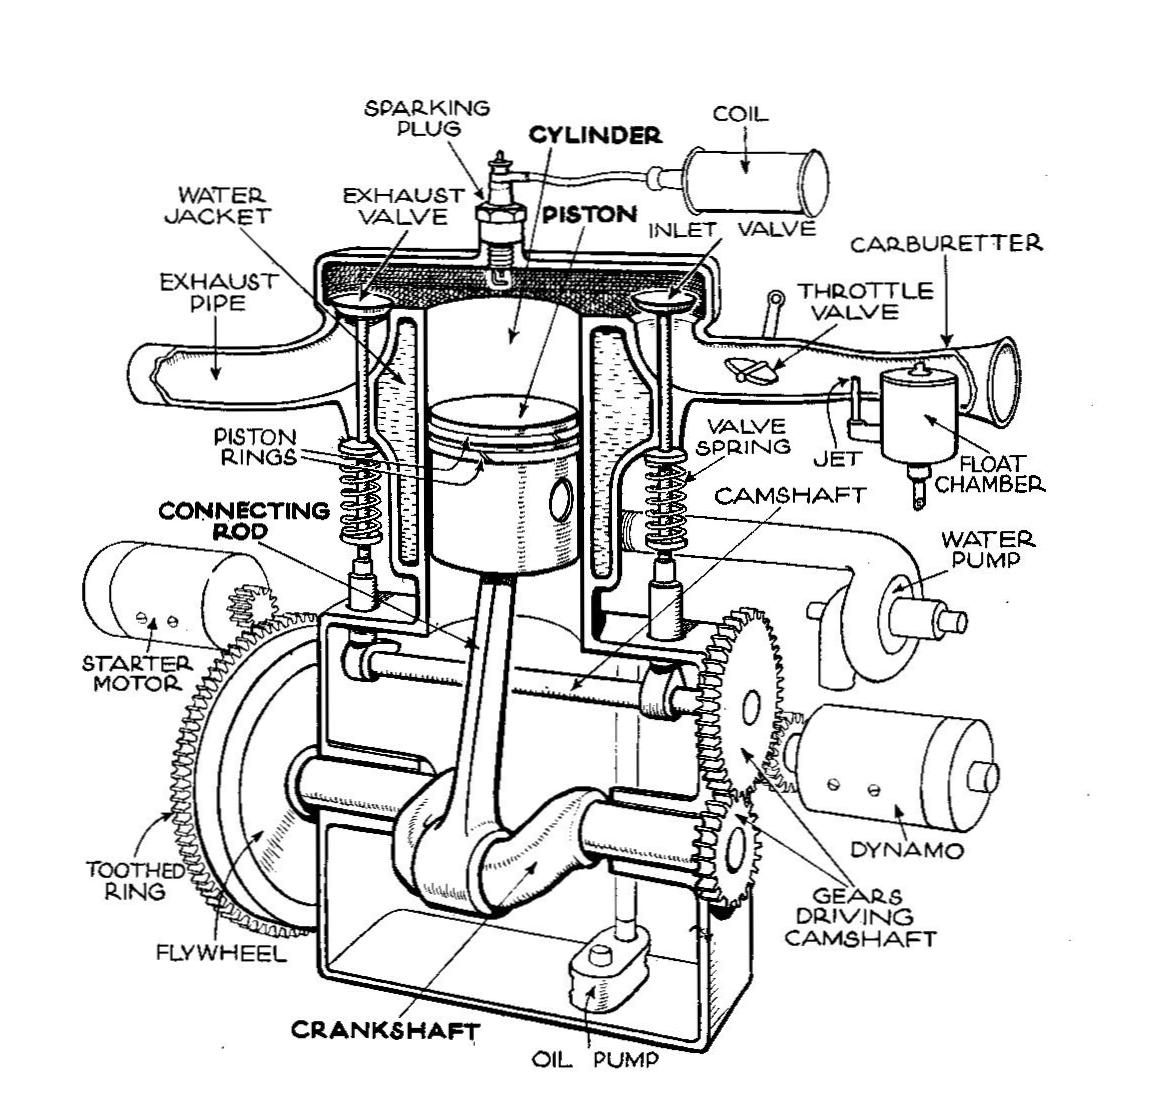 Car Engine Diagram And Explanation.Basic Engine Components Diagram Wiring Diagram